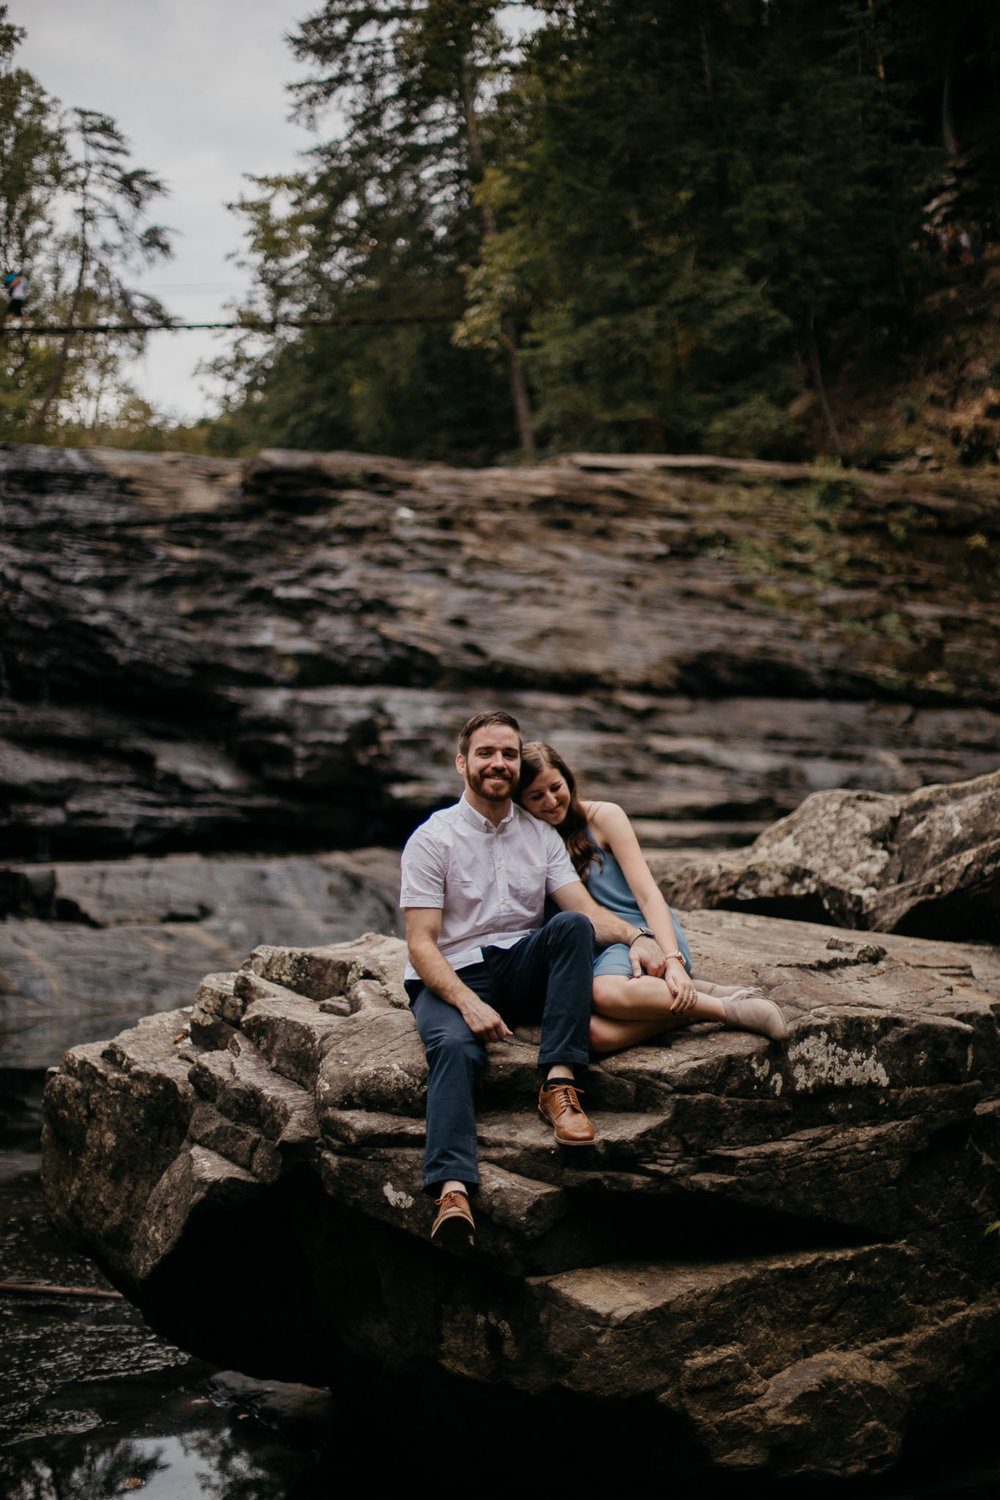 The Hatches | A Moody and Adventurous Engagement Session | Falls Creek Falls | Cookeville, Tennessee | Memphis Tennessee Elopement and Wedding Photographers | memphis-tennessee-elopement-and-wedding-photographer-fall-creek-falls-cookeville-utah-colorado-arizona-moody-adventure-unique-cozy-romantic-pnw-state-park-lovey-beautiful-nature